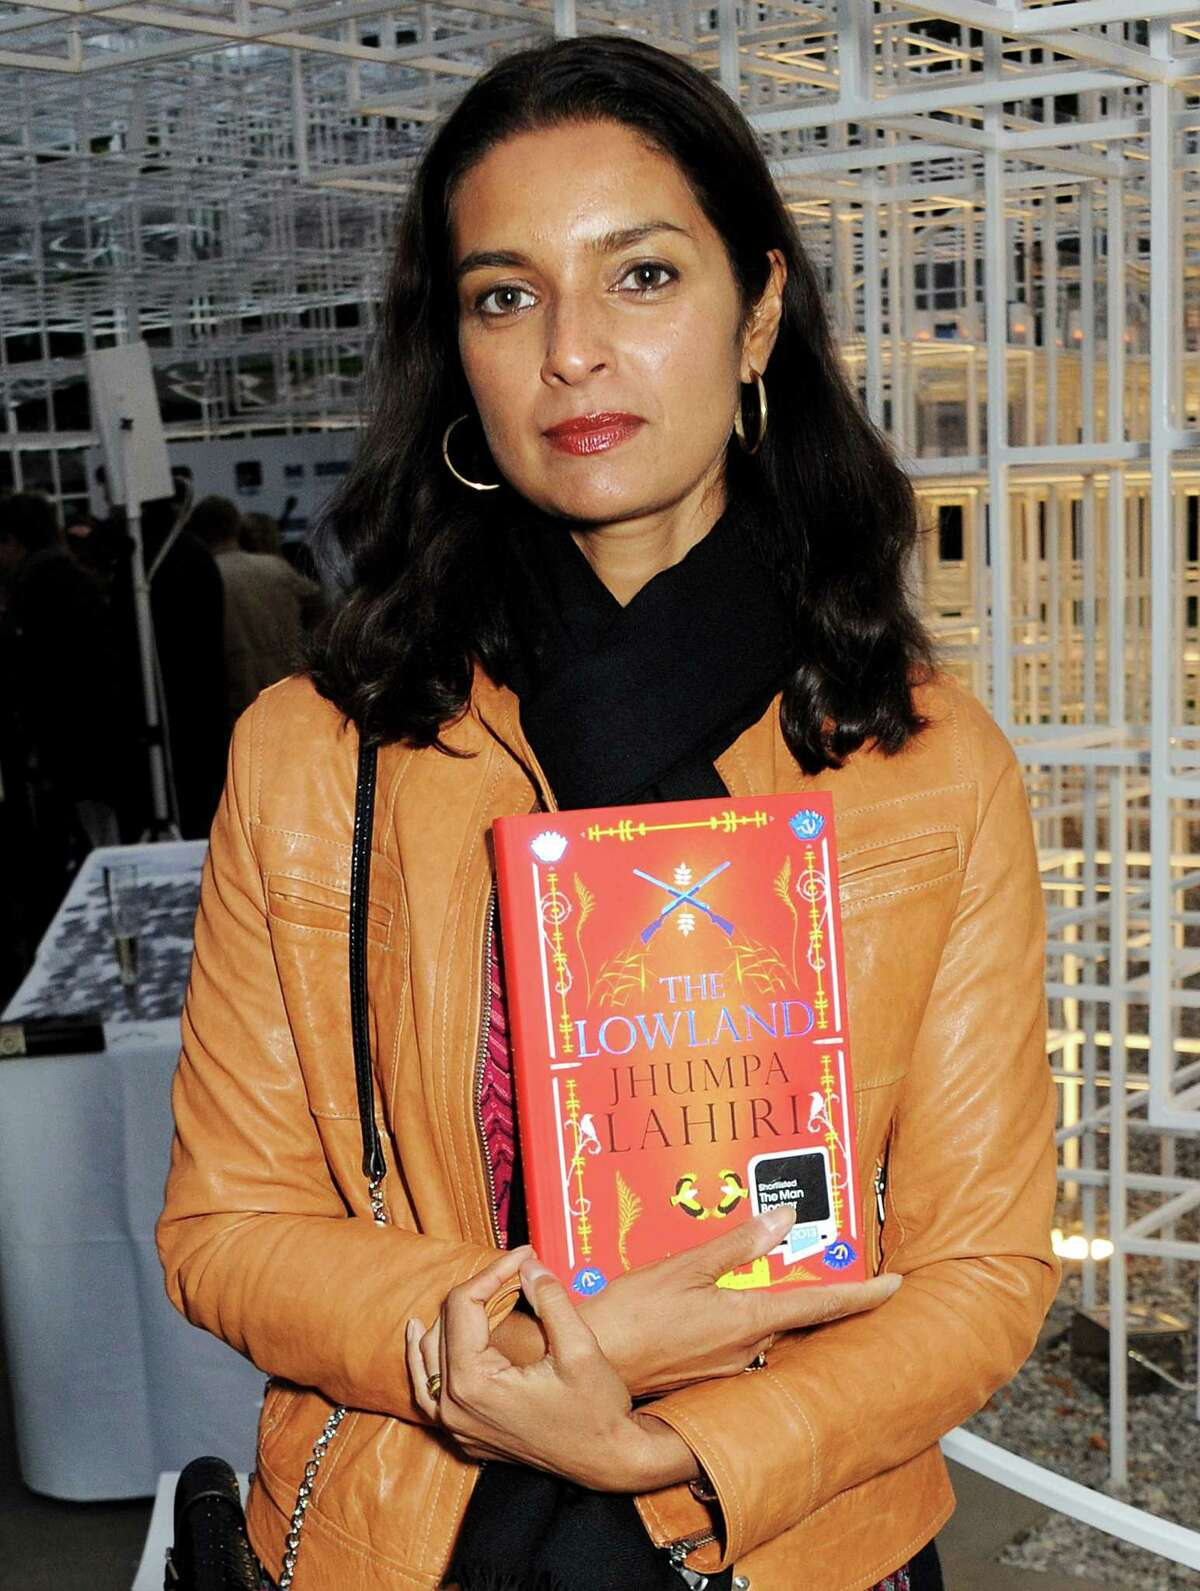 Jhumpa Lahiri attends the Man Booker Prize shortlist announcement at The Serpentine Gallery Pavilion on September 10, 2013 in London, England. (Photo by David M. Benett/Getty Images)